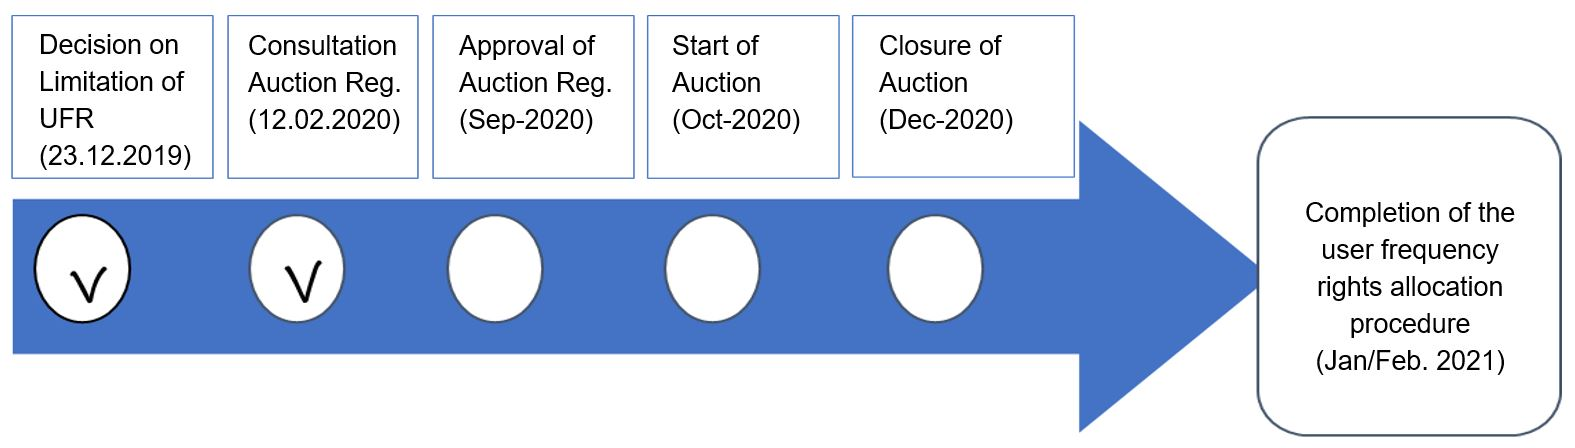 As shown in the indicative schedule below, it is expected that the auction should start in October 2020 and the allocation of frequency user rights (UFR) is planned for 2021.